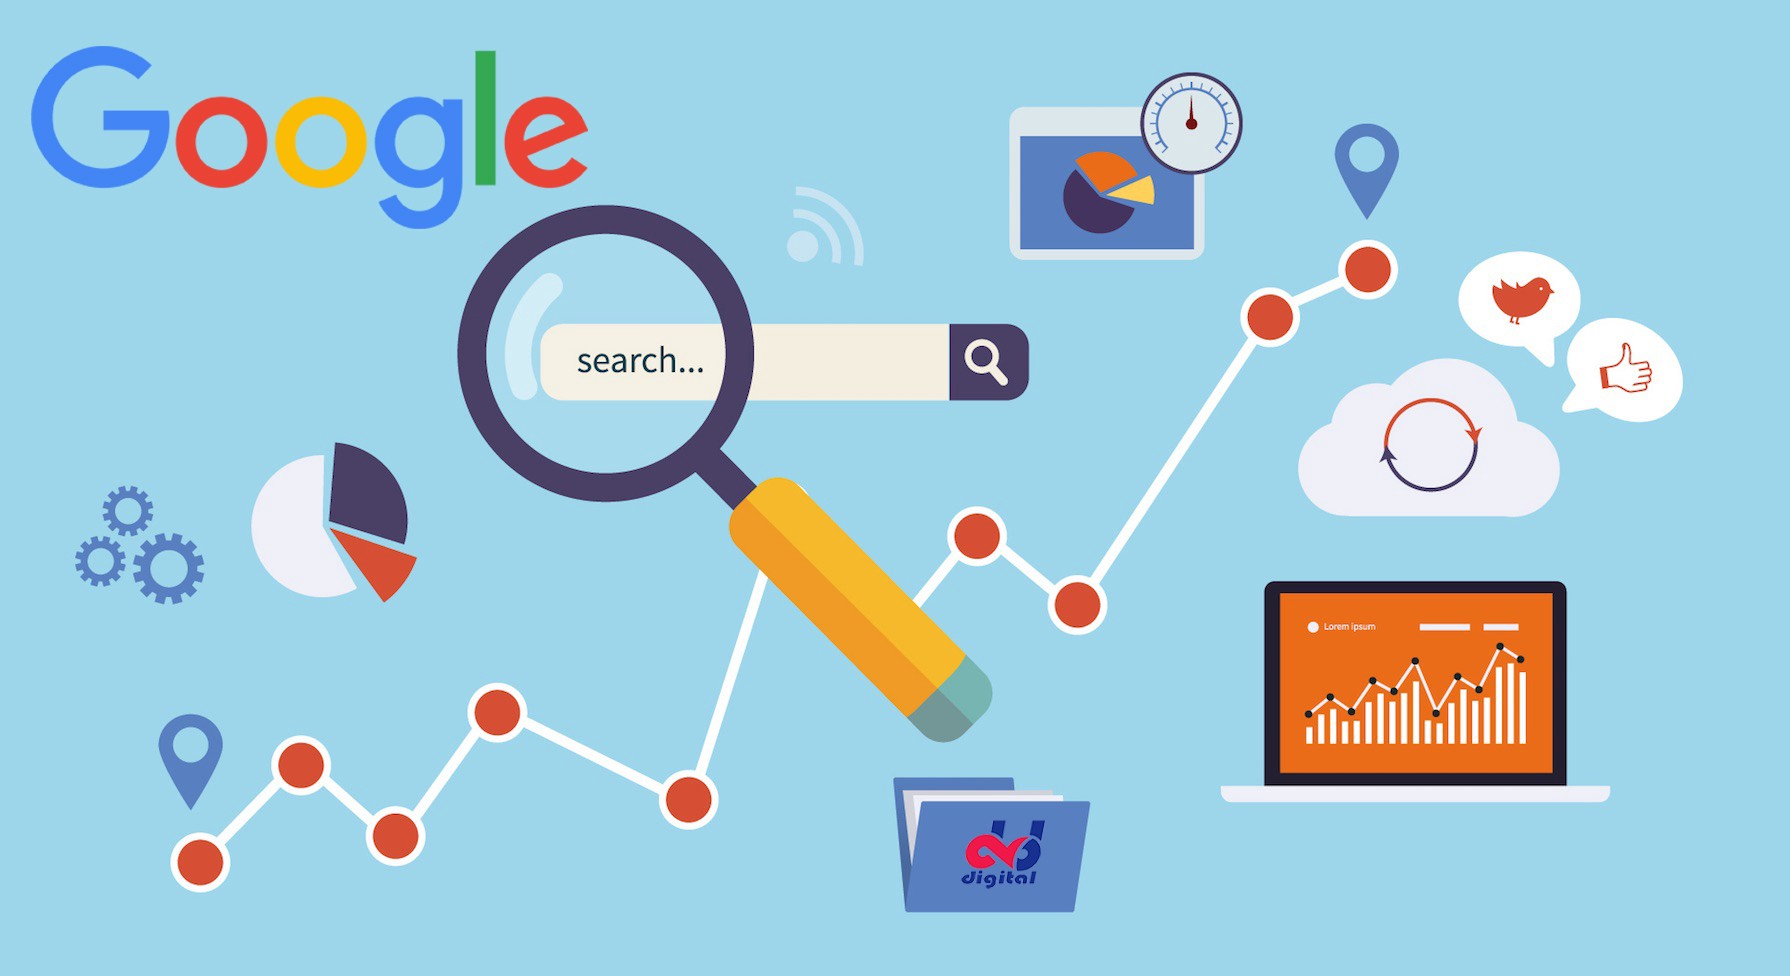 Top UP GIVE YOU Google 1st Page Target Country - Ranking to the Website Top and 1st page on Google